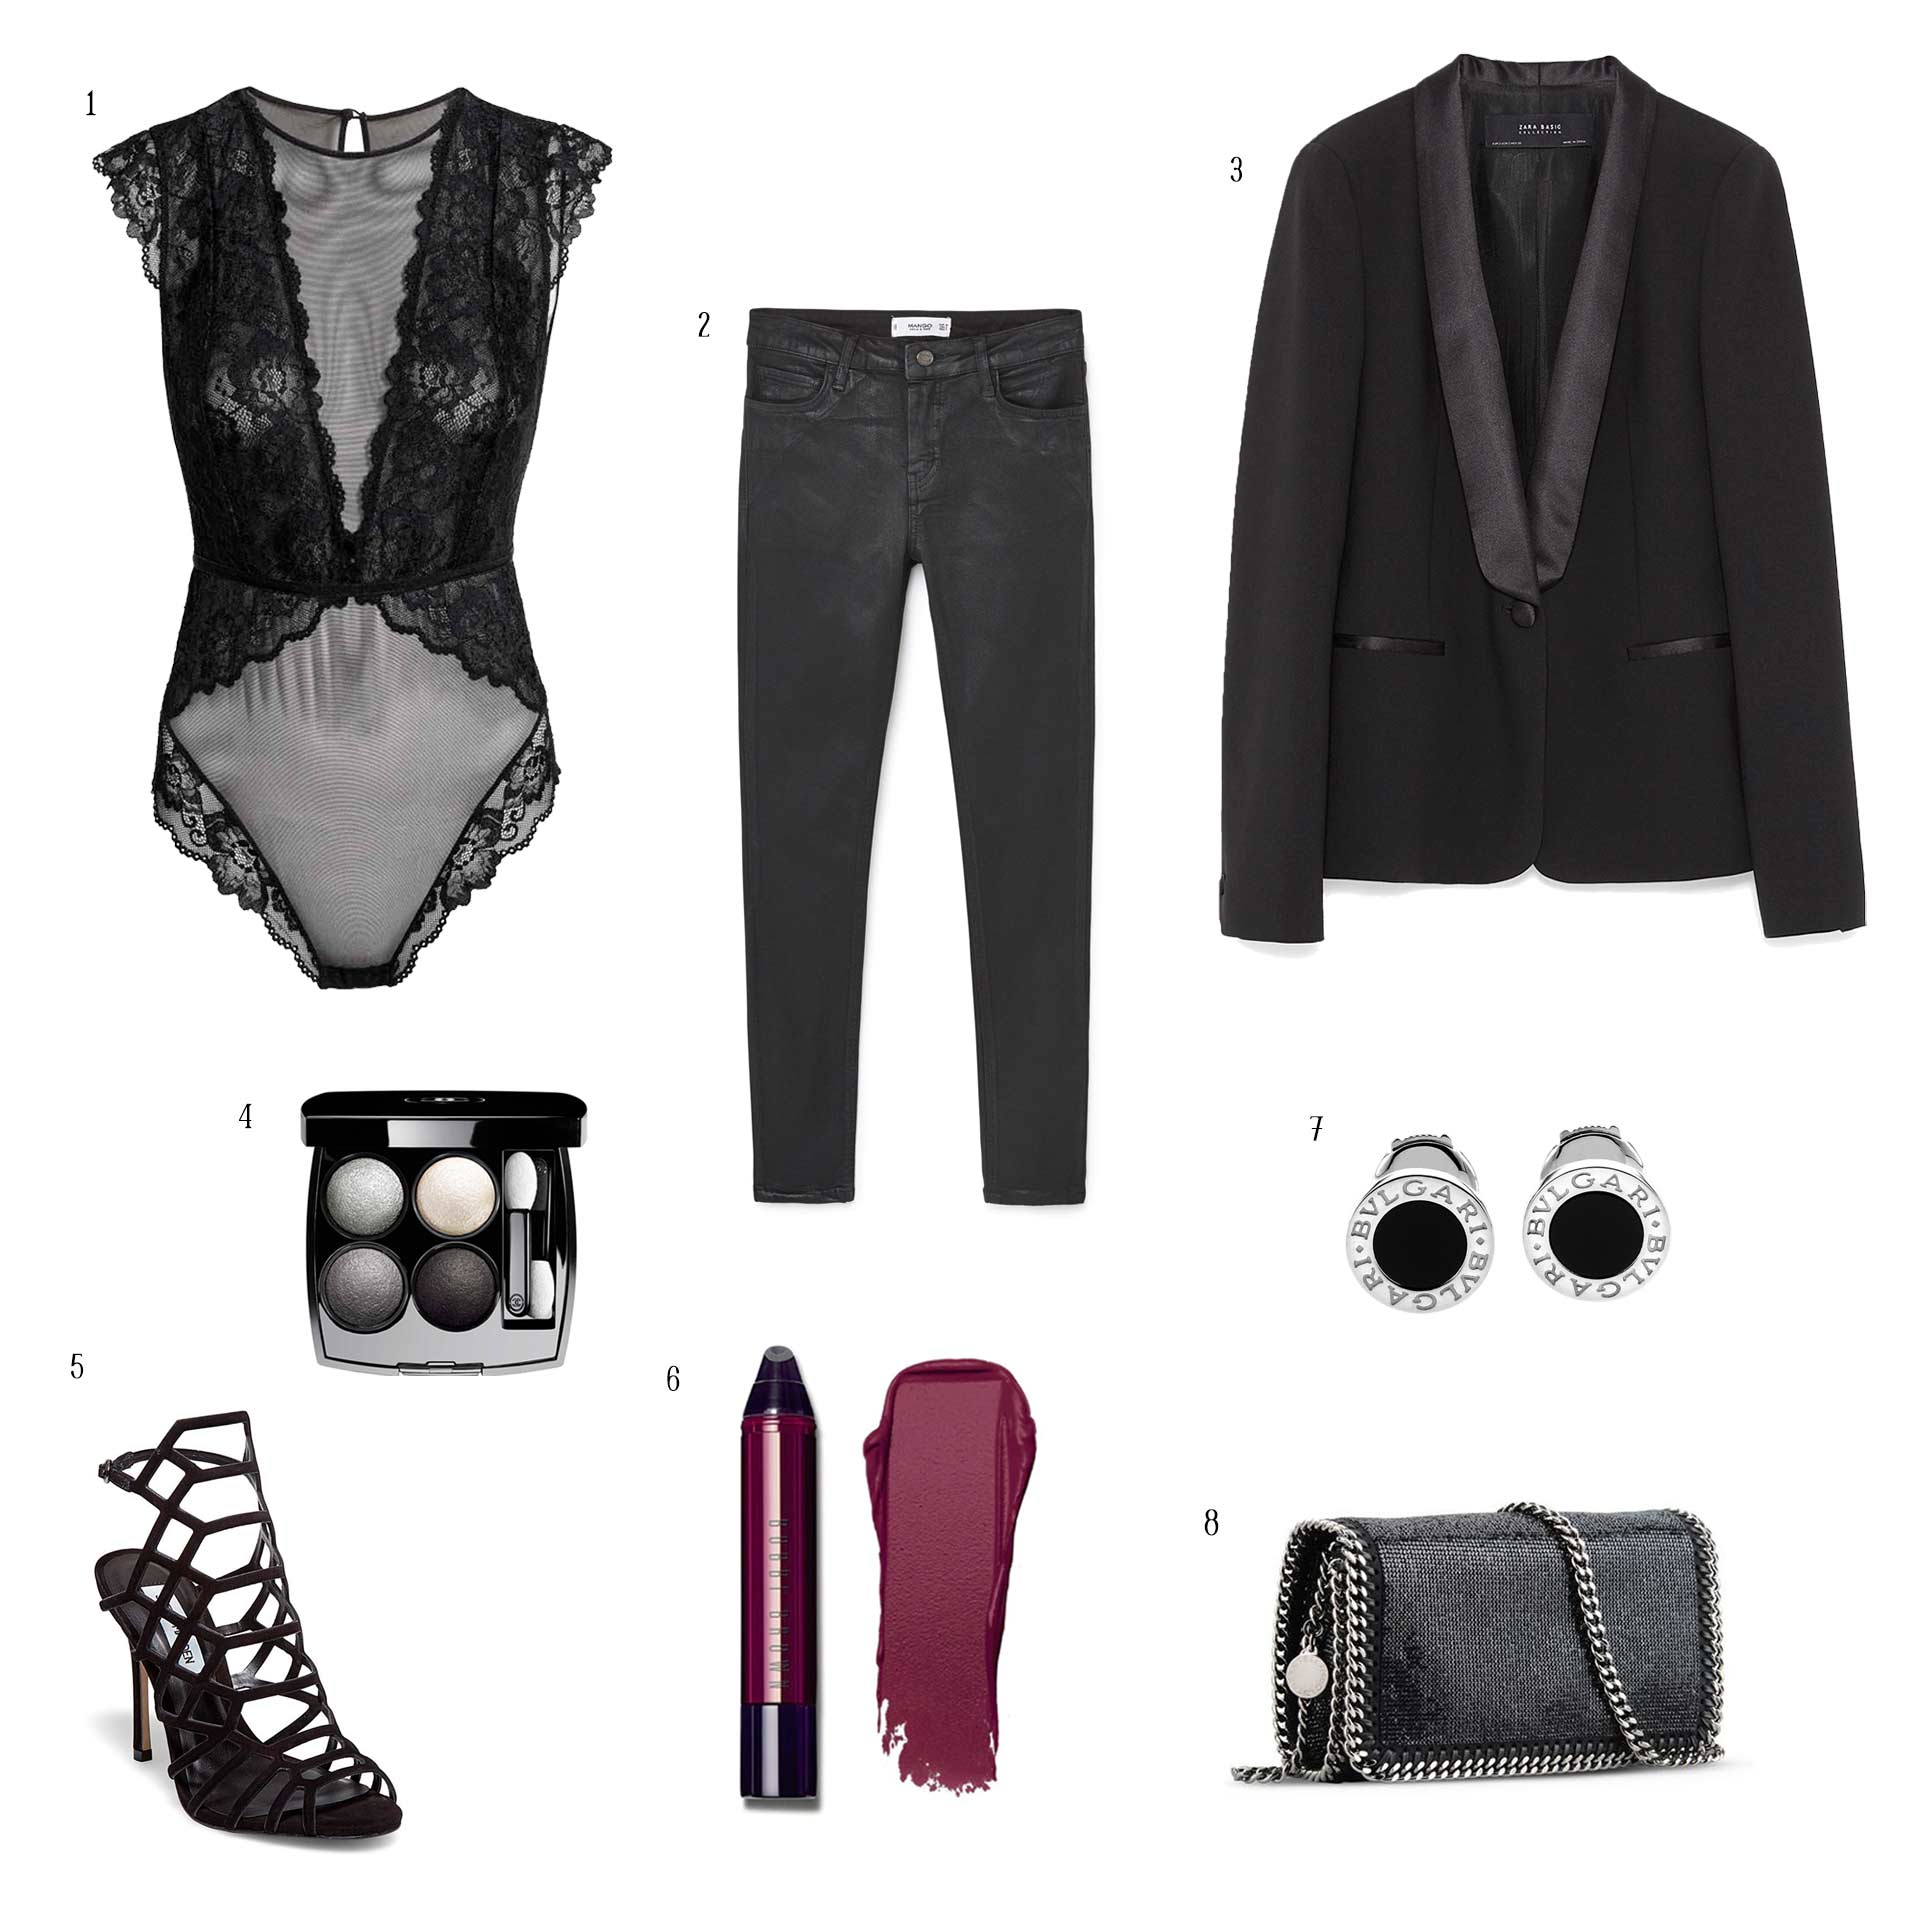 OUTFIT «BLACK IS BLACK» BY REALANDPARADISE